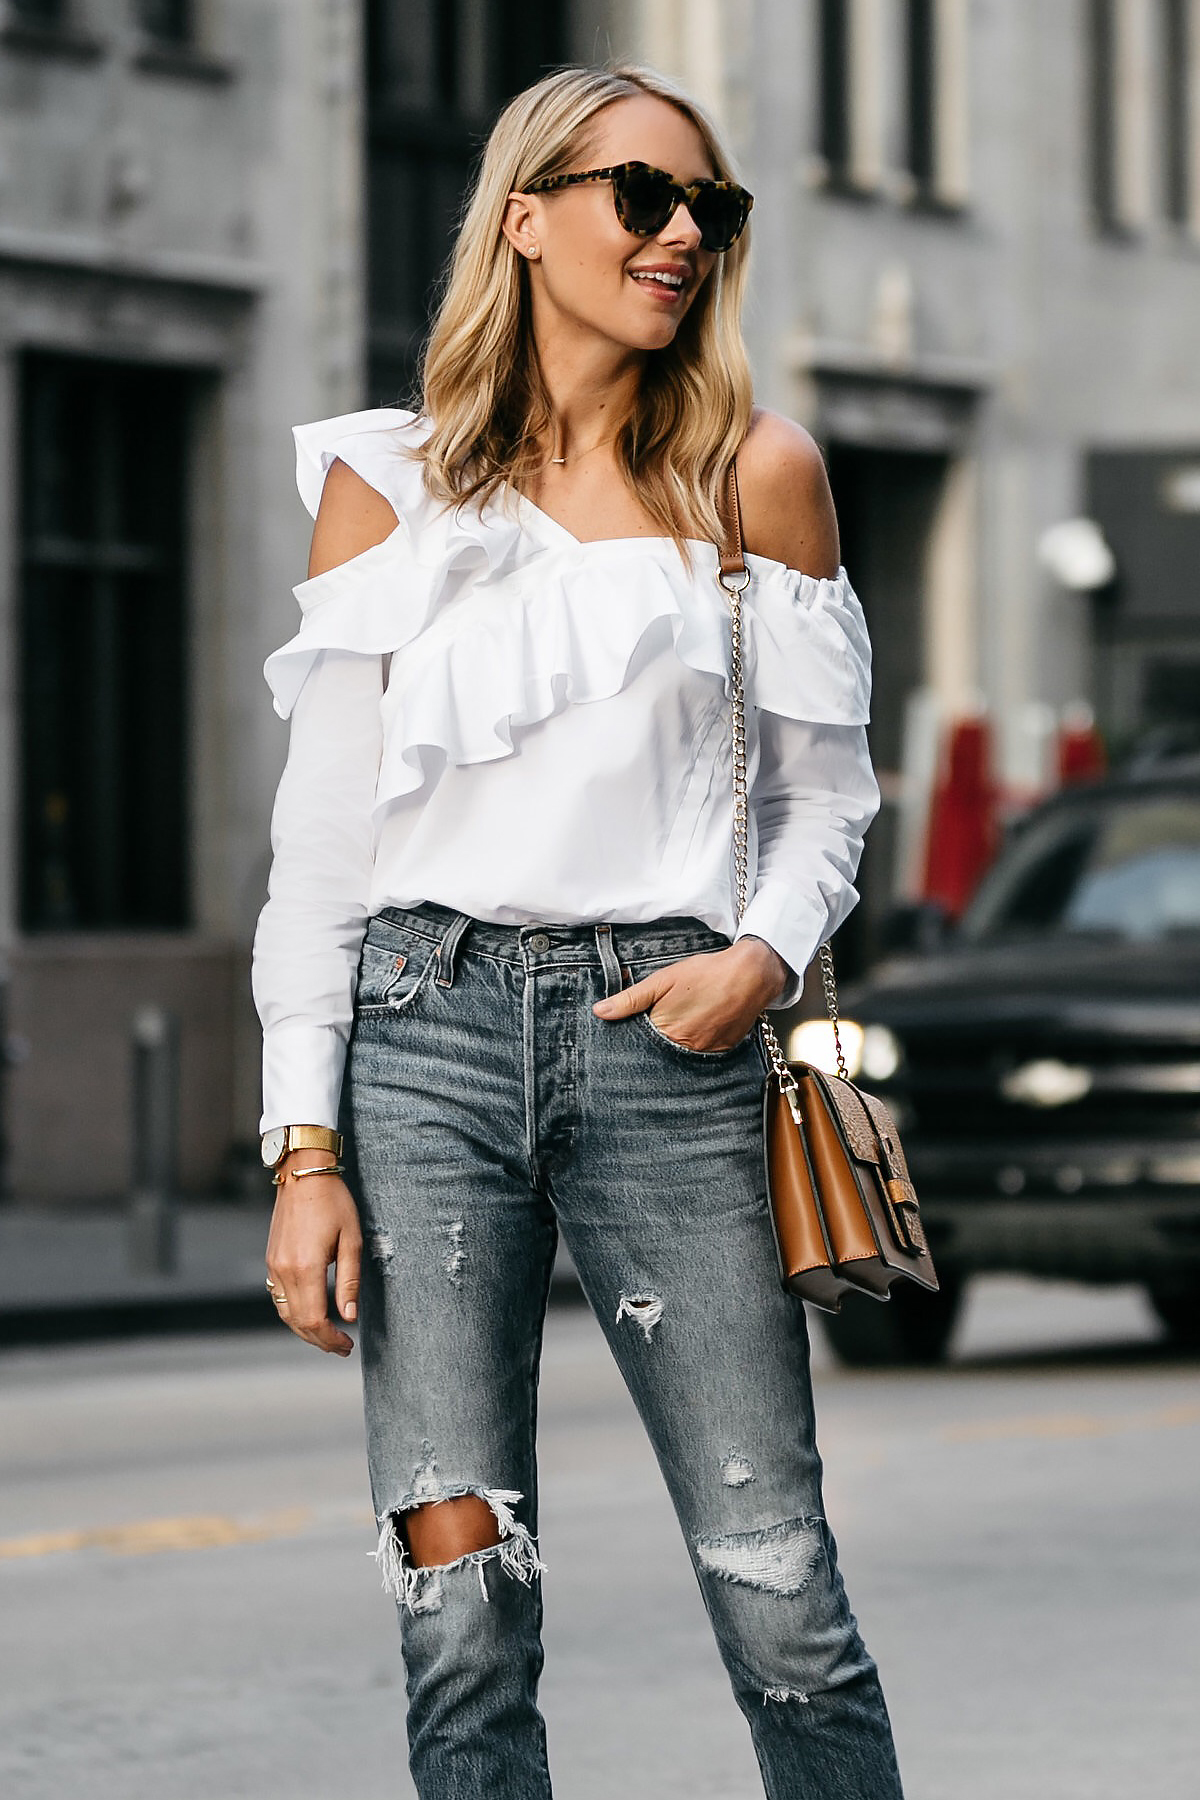 THE PERFECT ASYMMETRICAL RUFFLE TOP